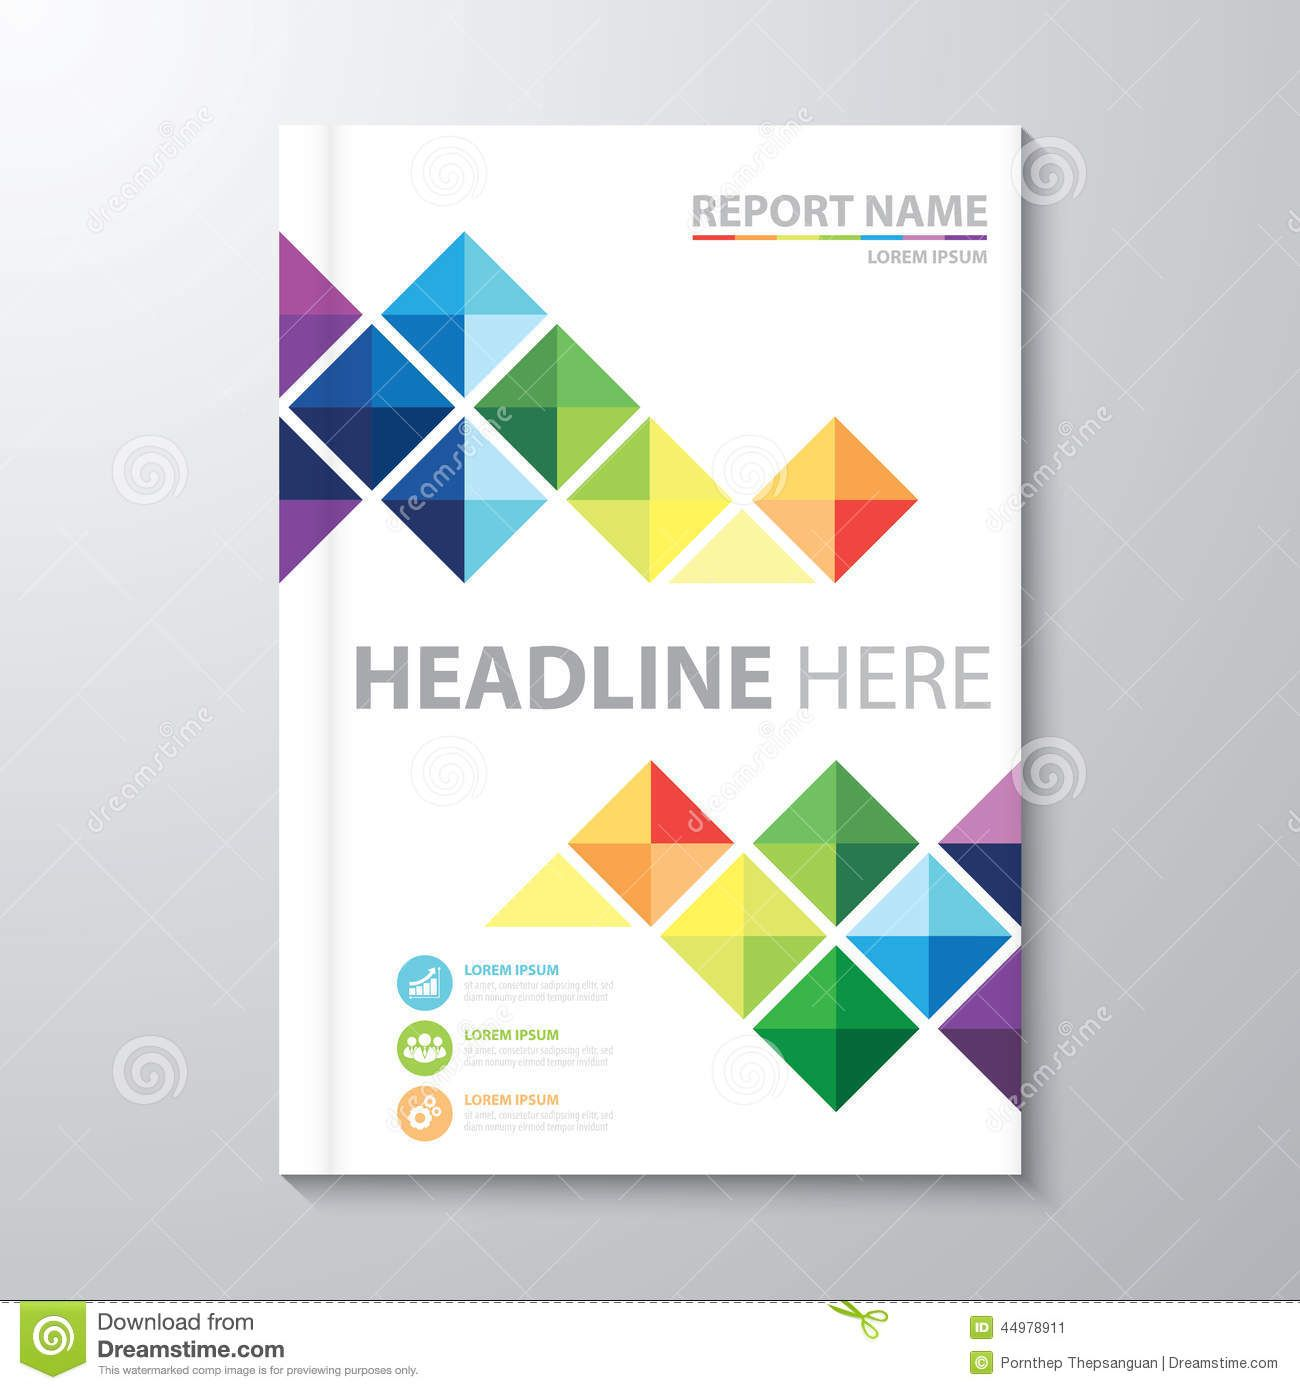 Annual Report Cover Design Template | cover | Pinterest